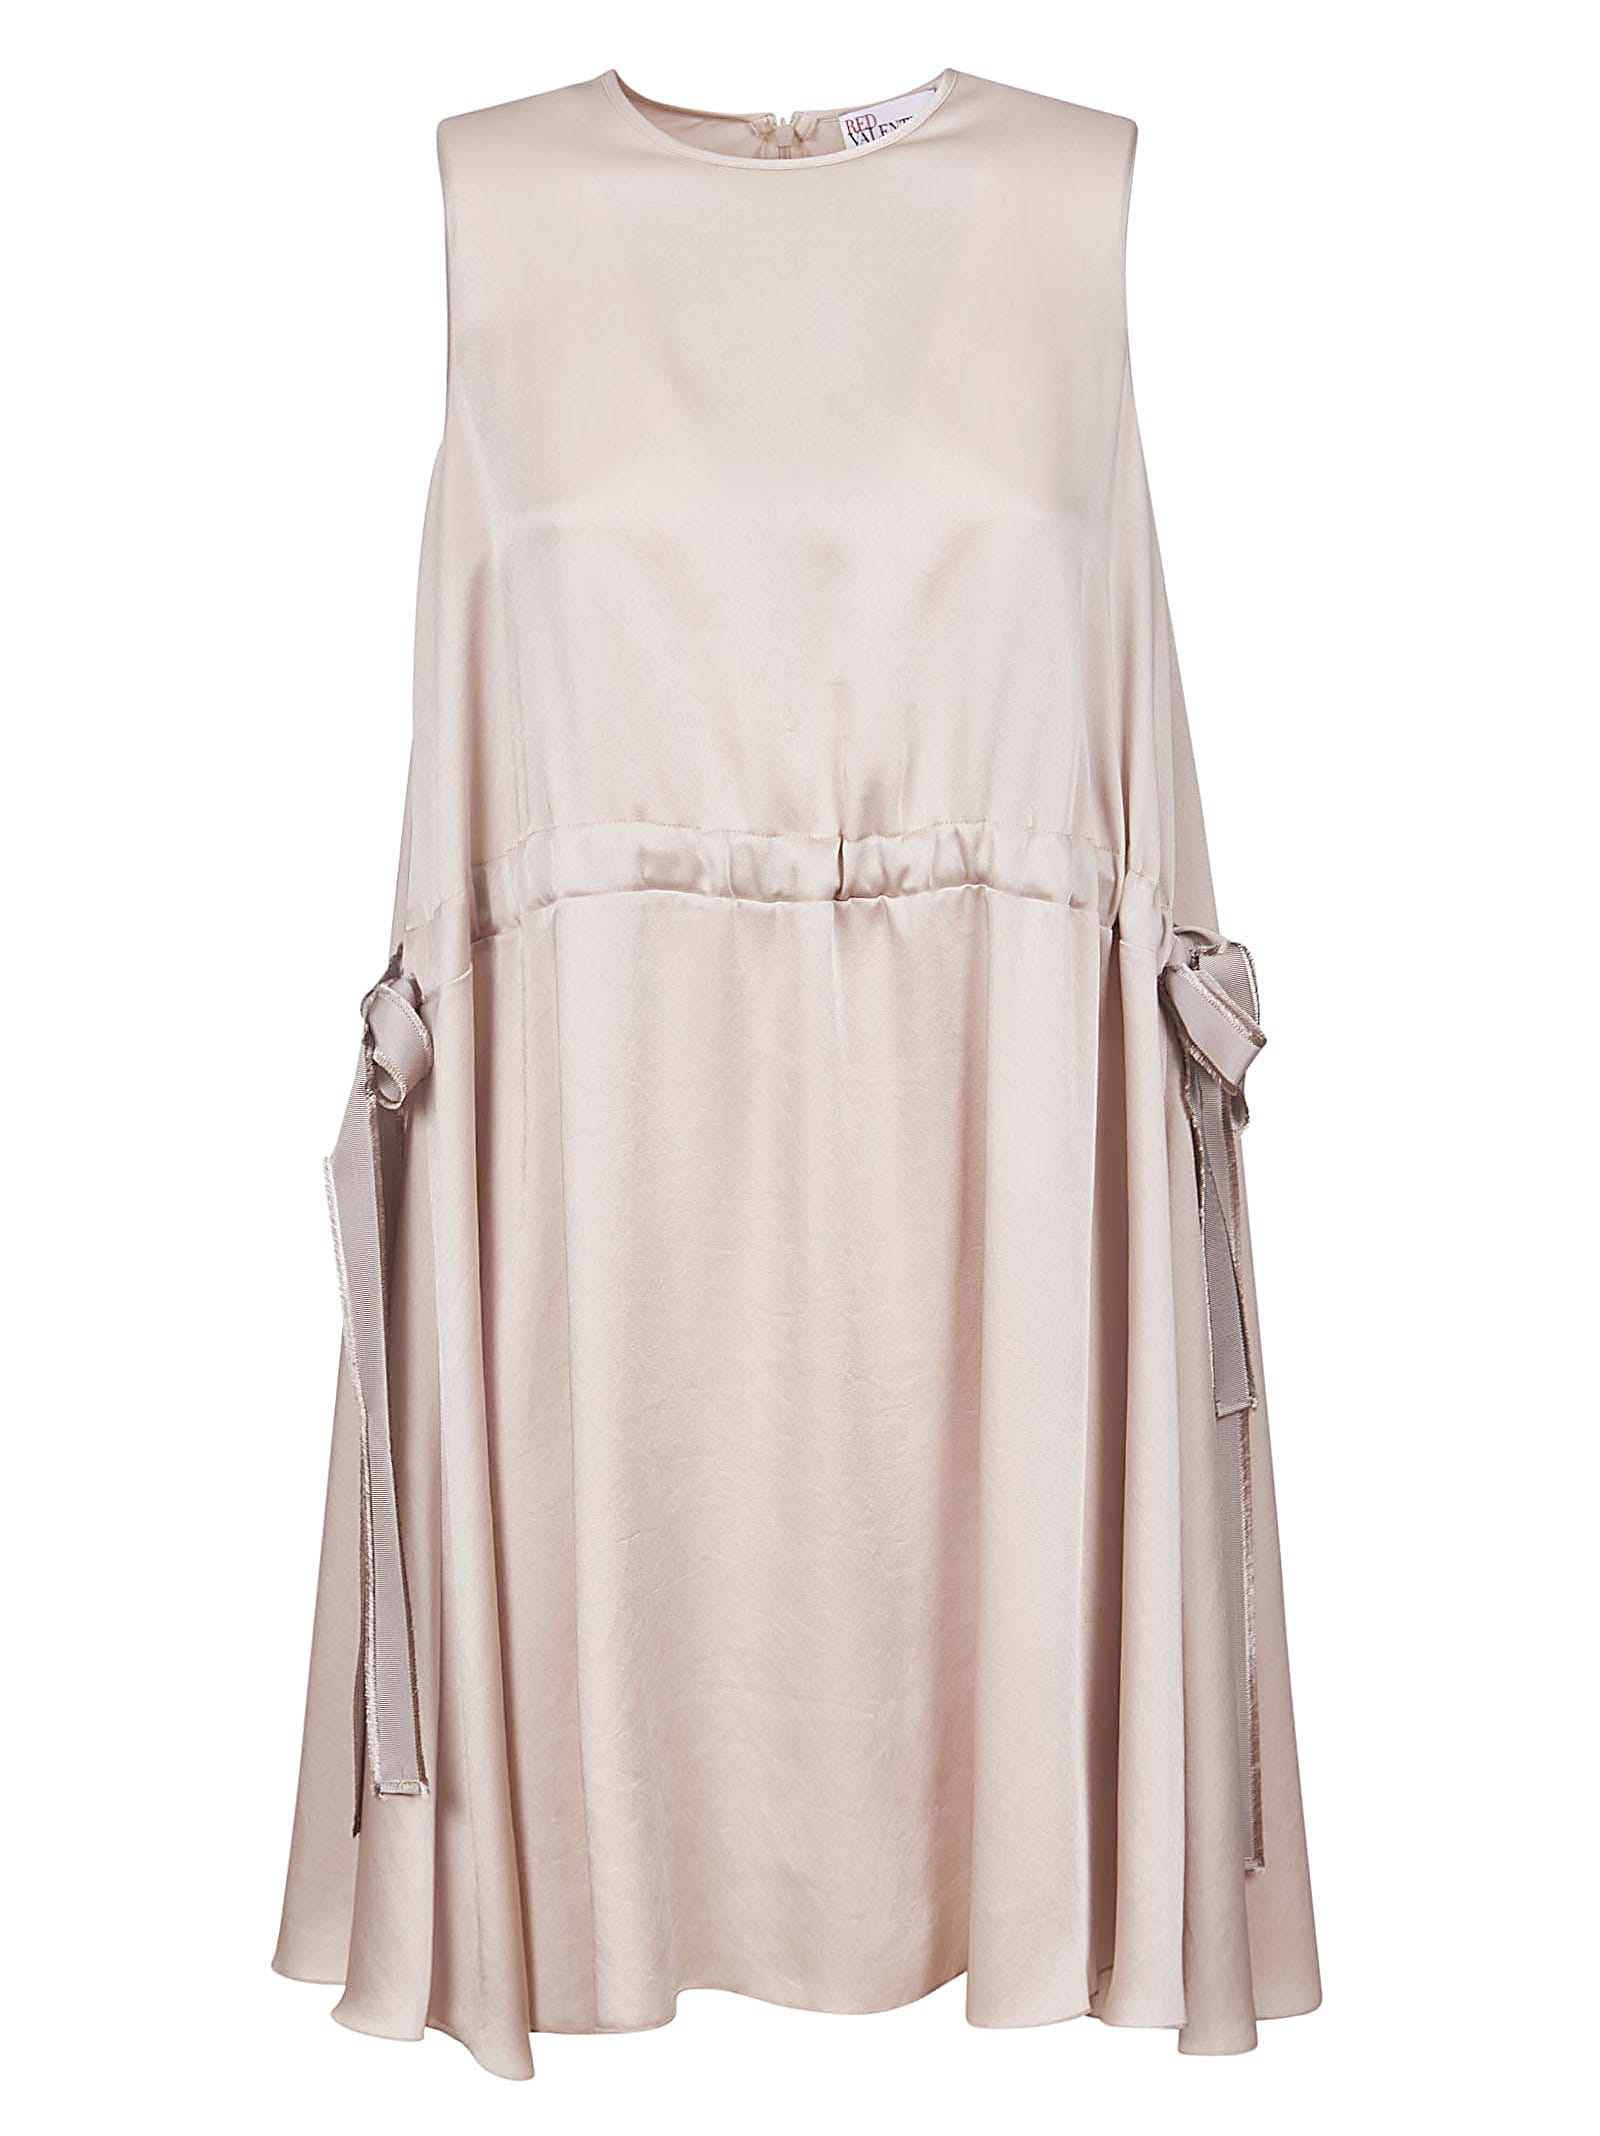 Buy RED Valentino Side Bow Detail Sleeveless Dress online, shop RED Valentino with free shipping